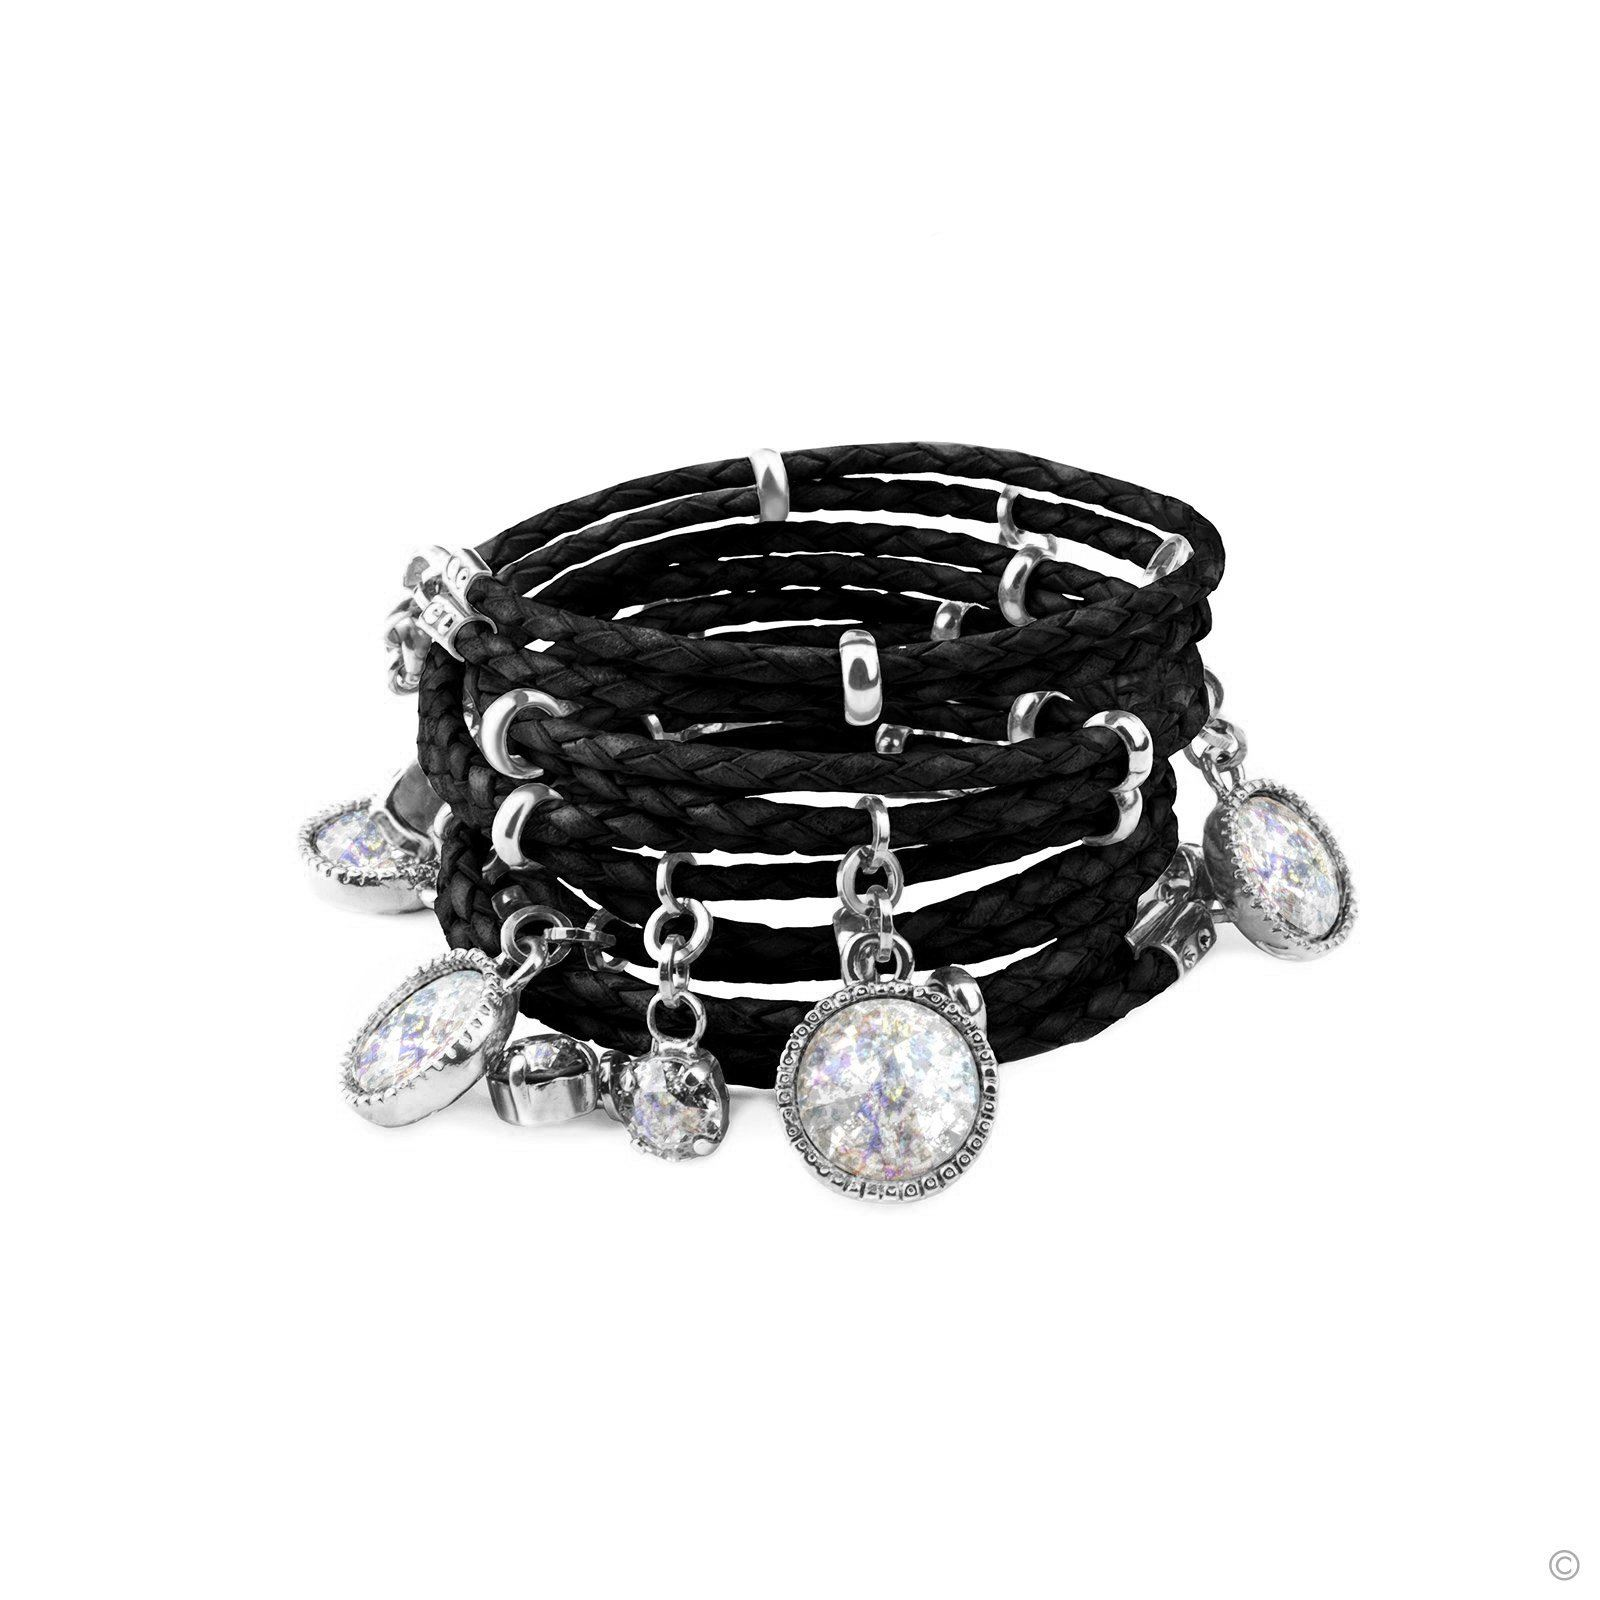 Daydream Leather Bracelet - Black & Silver